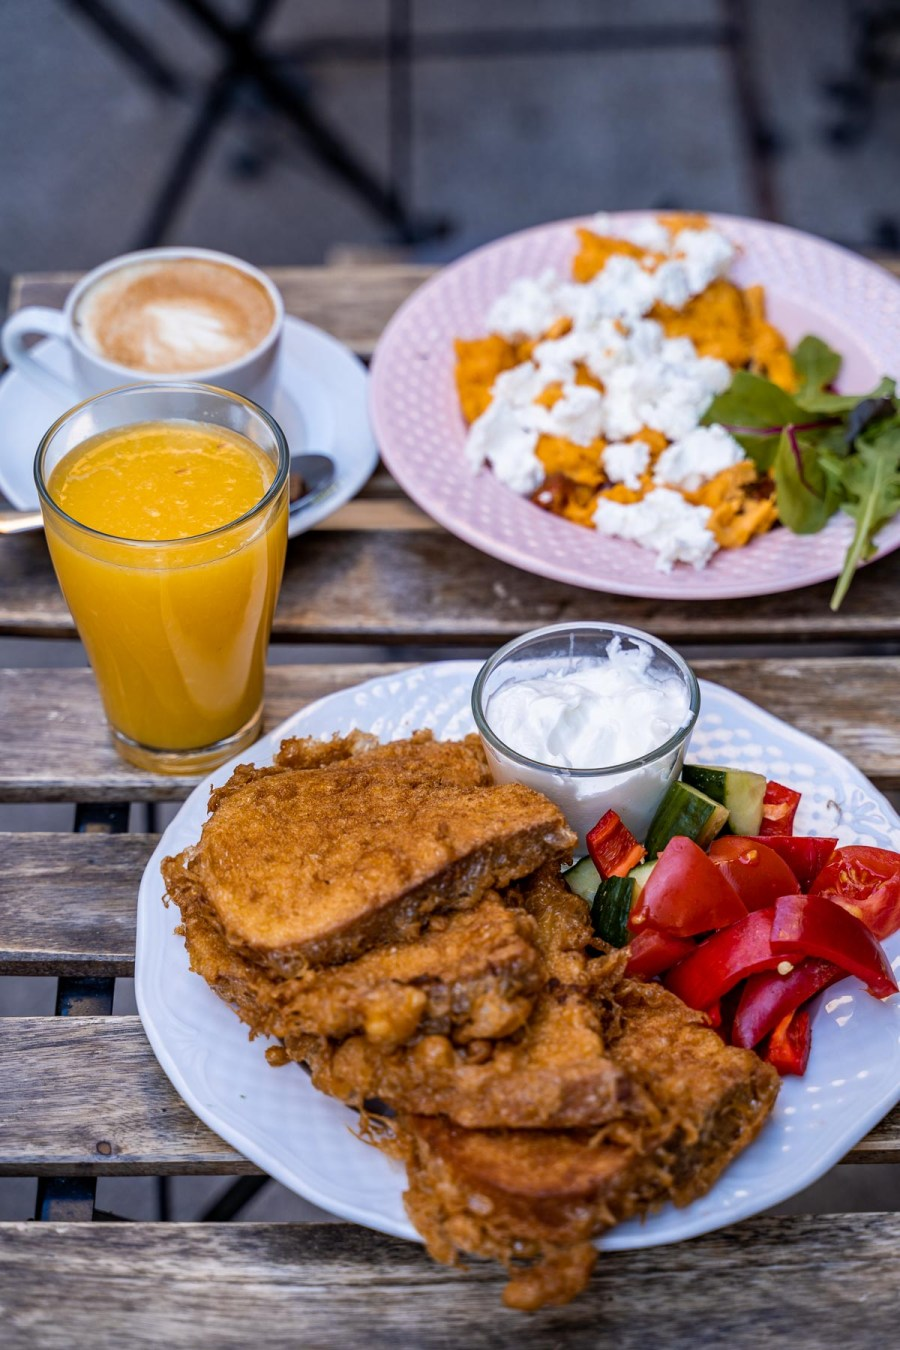 Savory French toast for breakfast at Zoska in Budapest